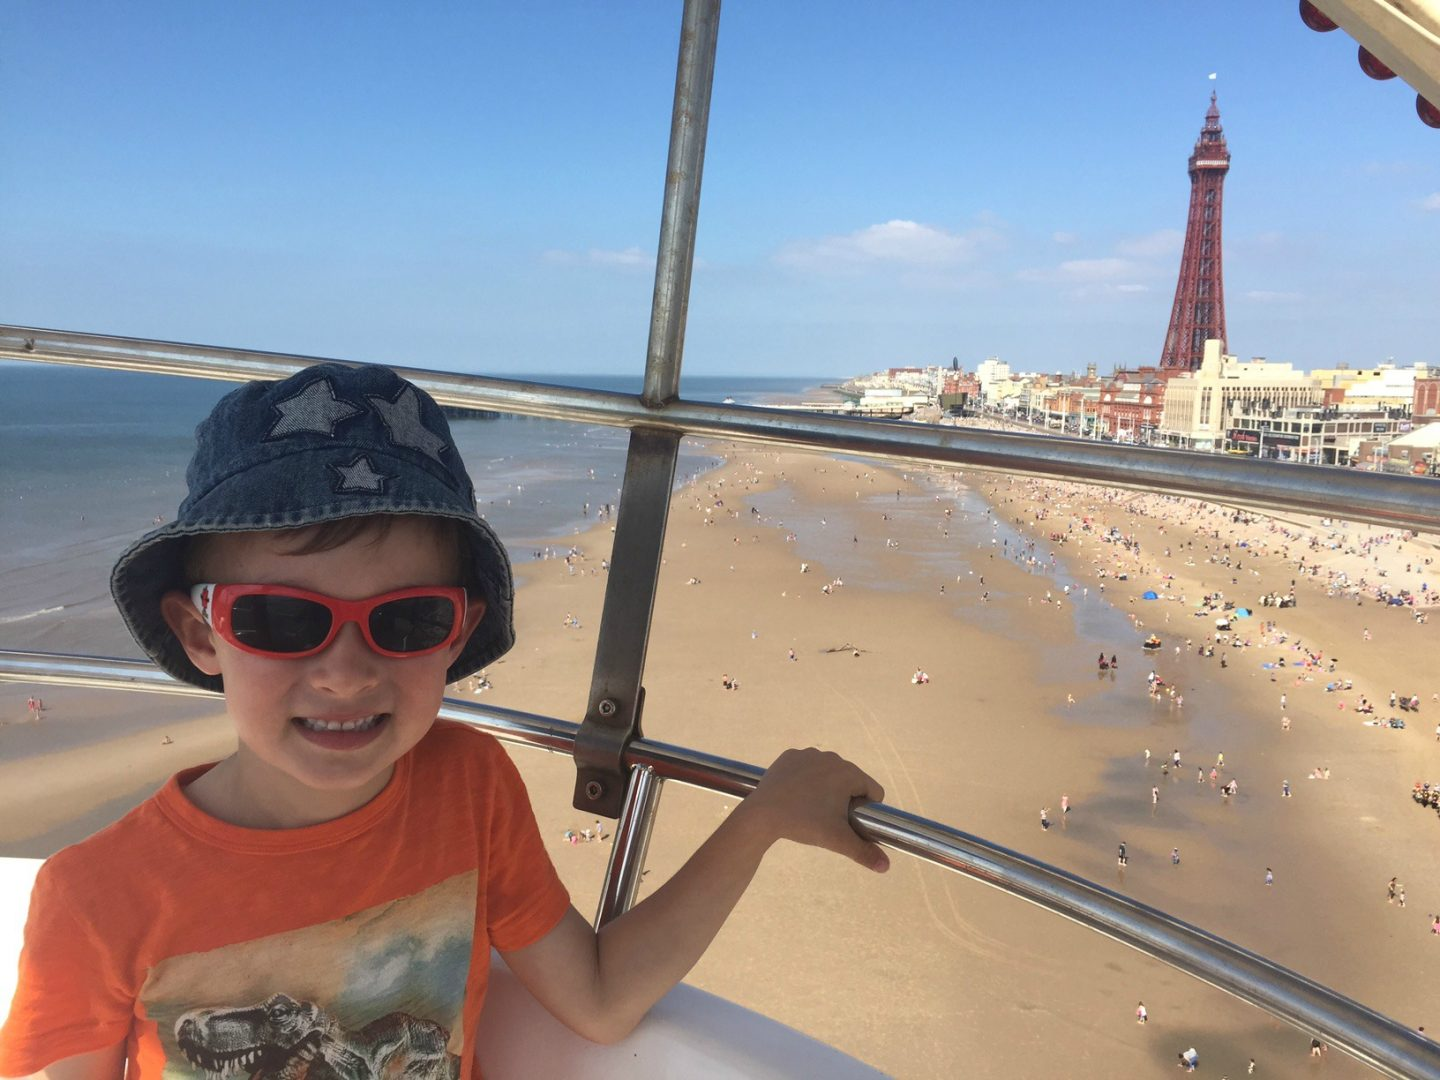 UK family friendly attractions handpicked by local mums - Big Wheel Blackpool